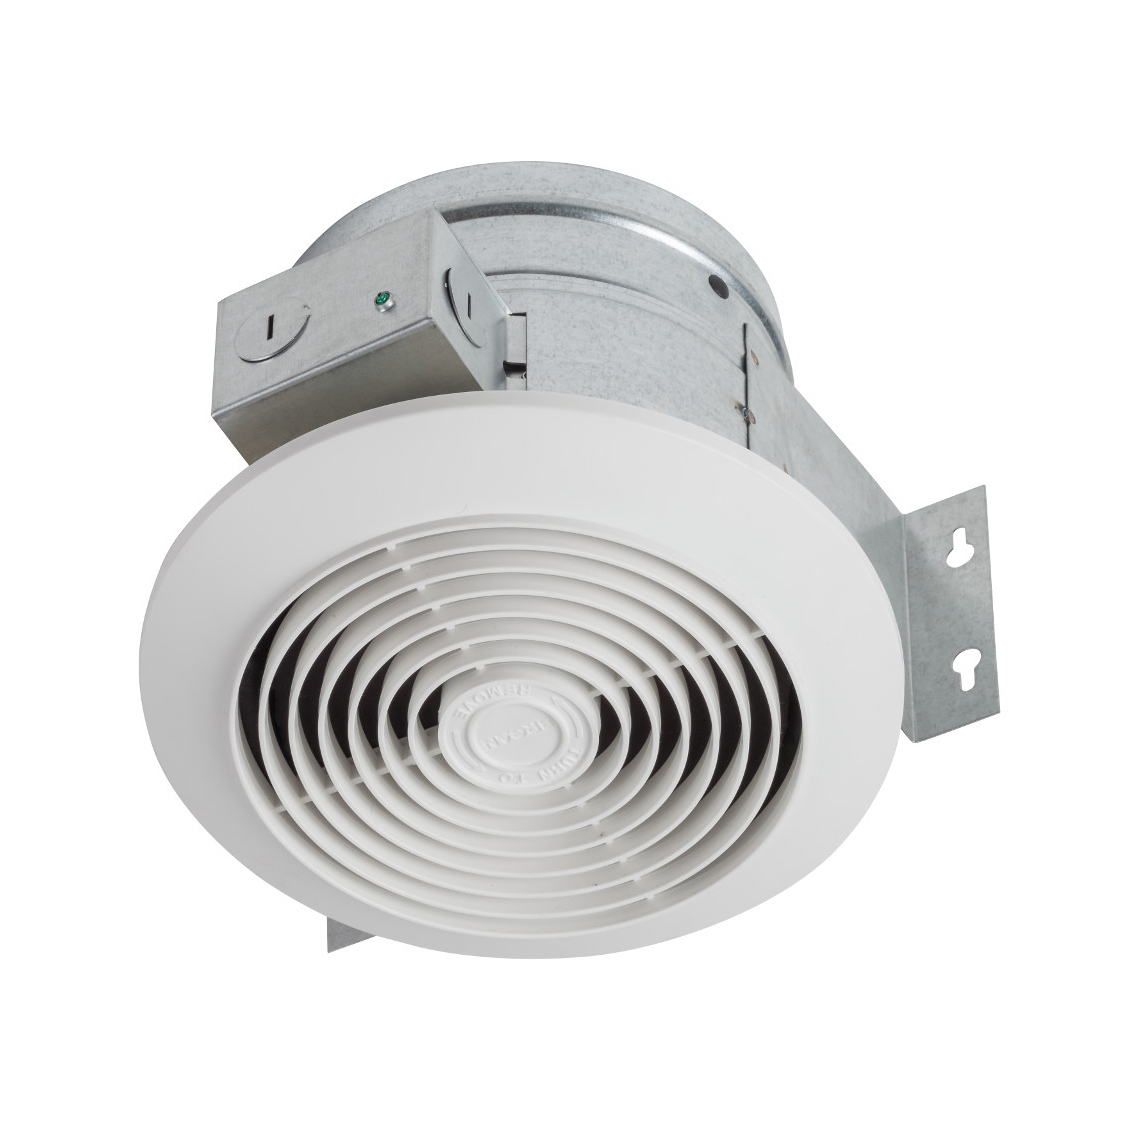 Broan 673 Vertical Discharge Bathroom Exhaust Fan